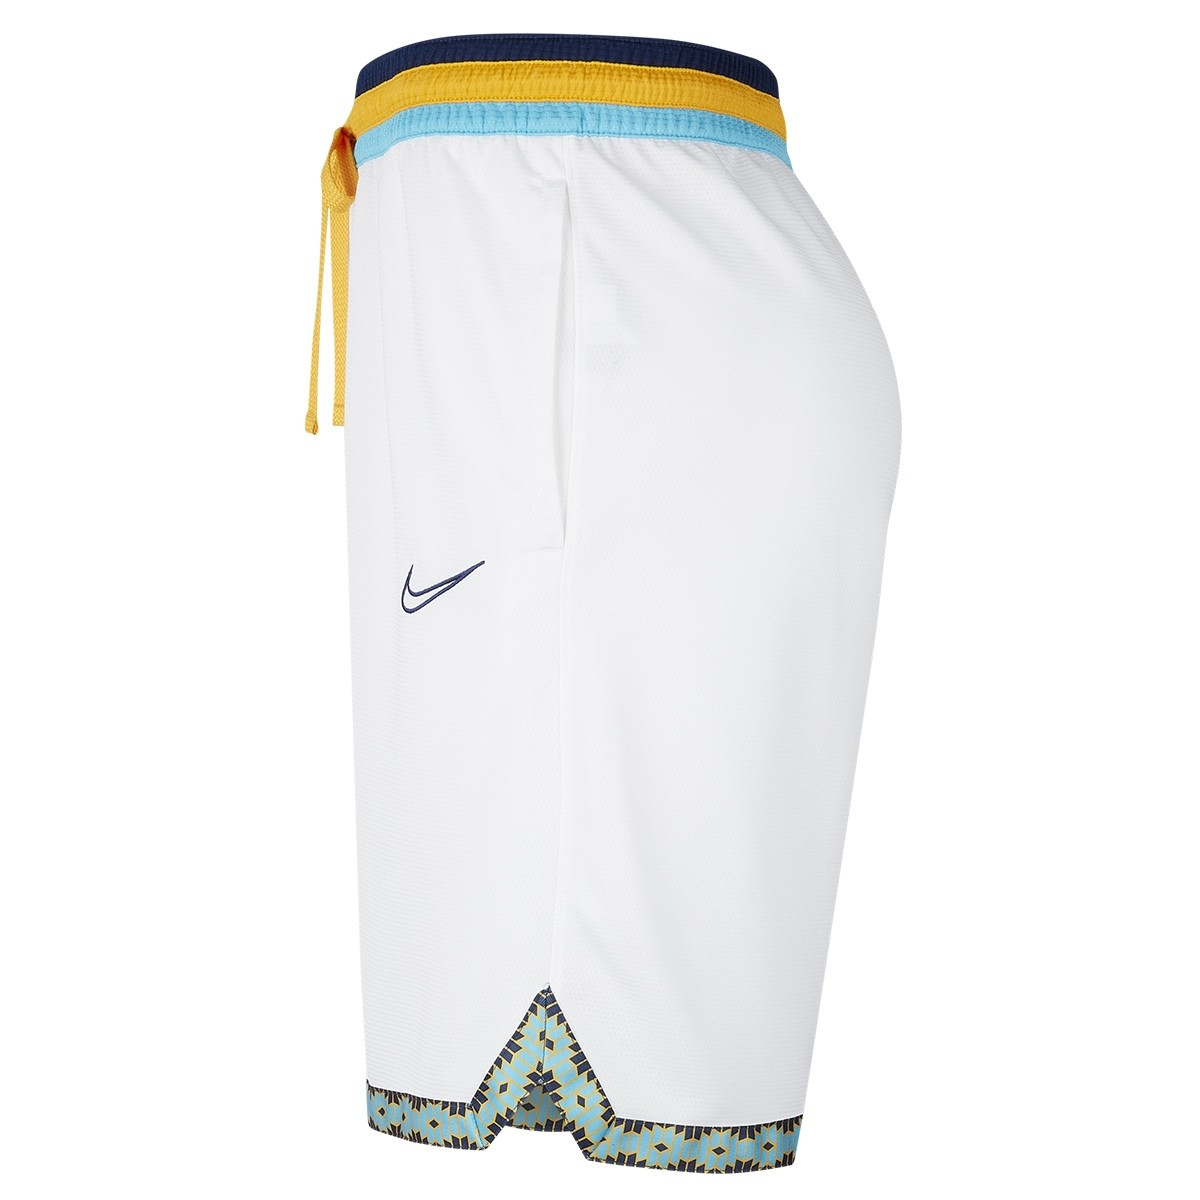 Nike DNA Short 'Blue Void'-BV9446-101